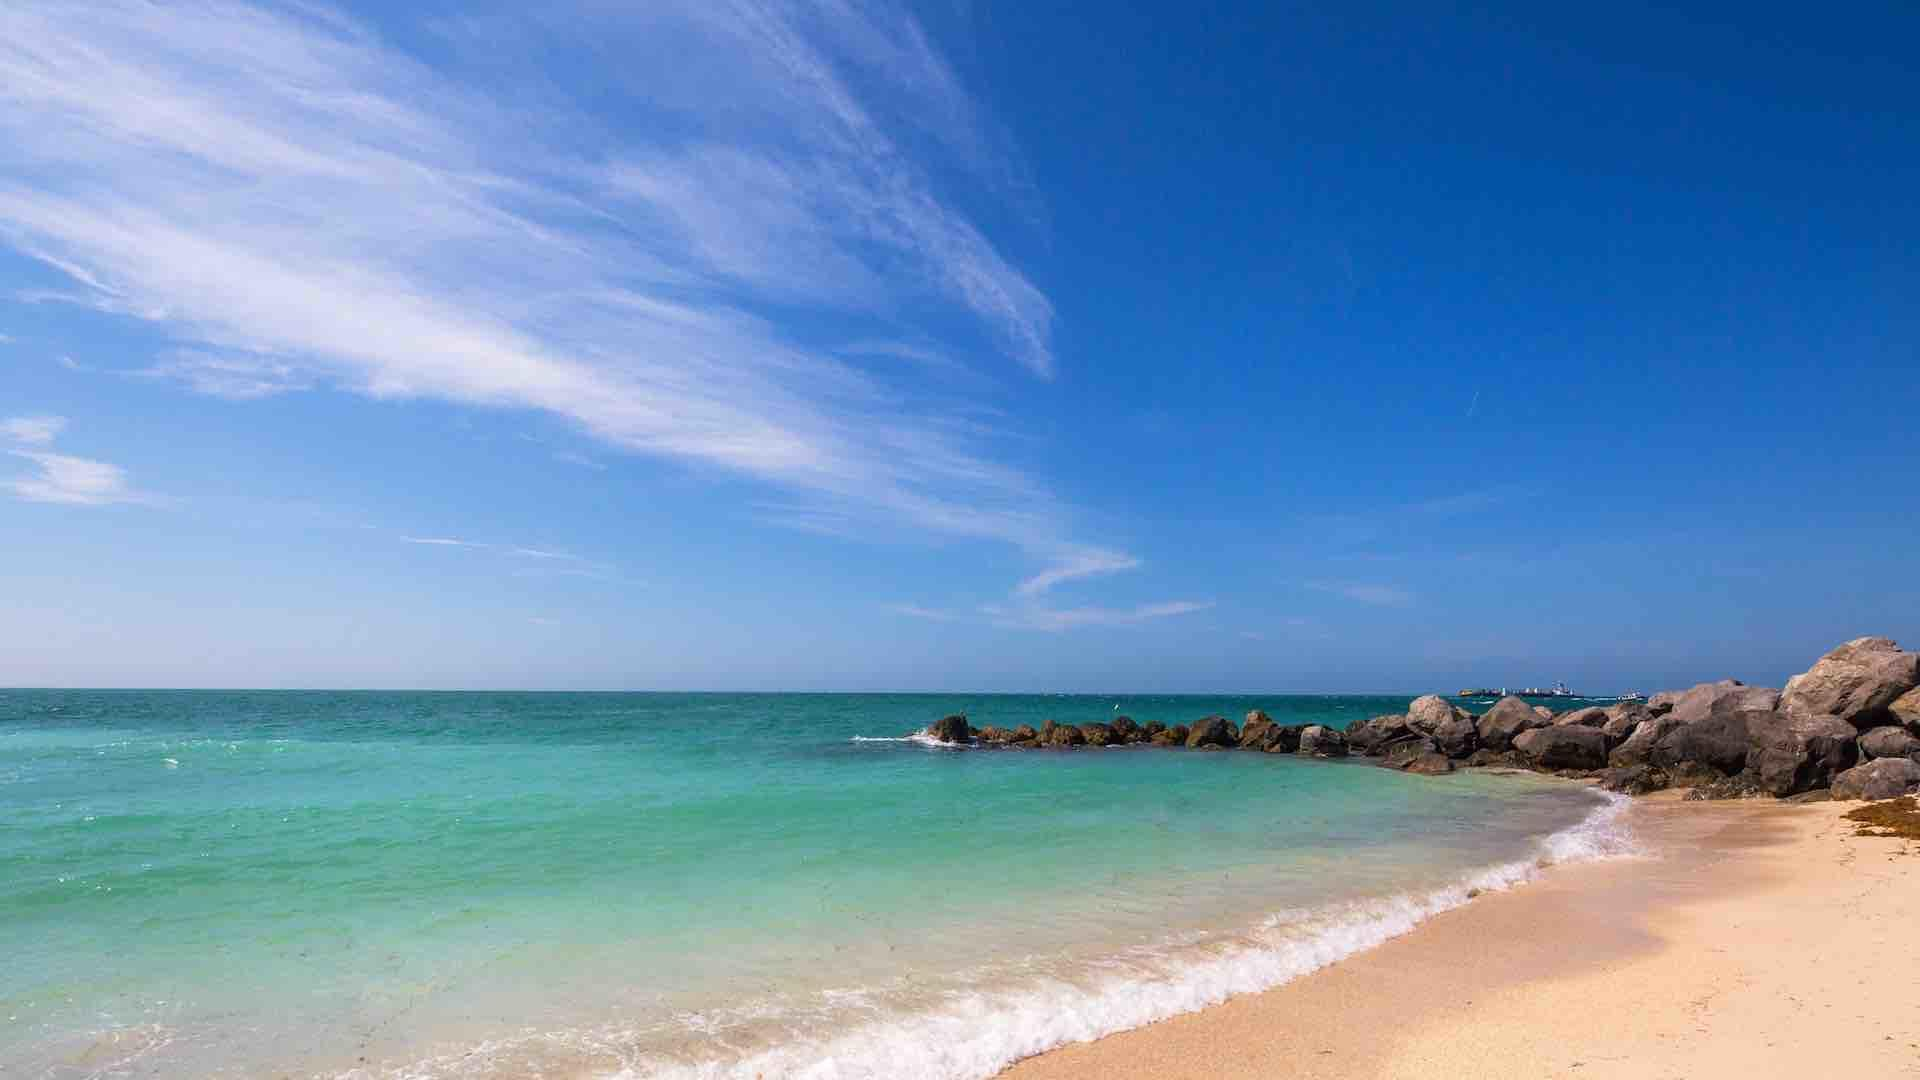 Be sure to get out and experience the beautiful waters of Key West during your stay...